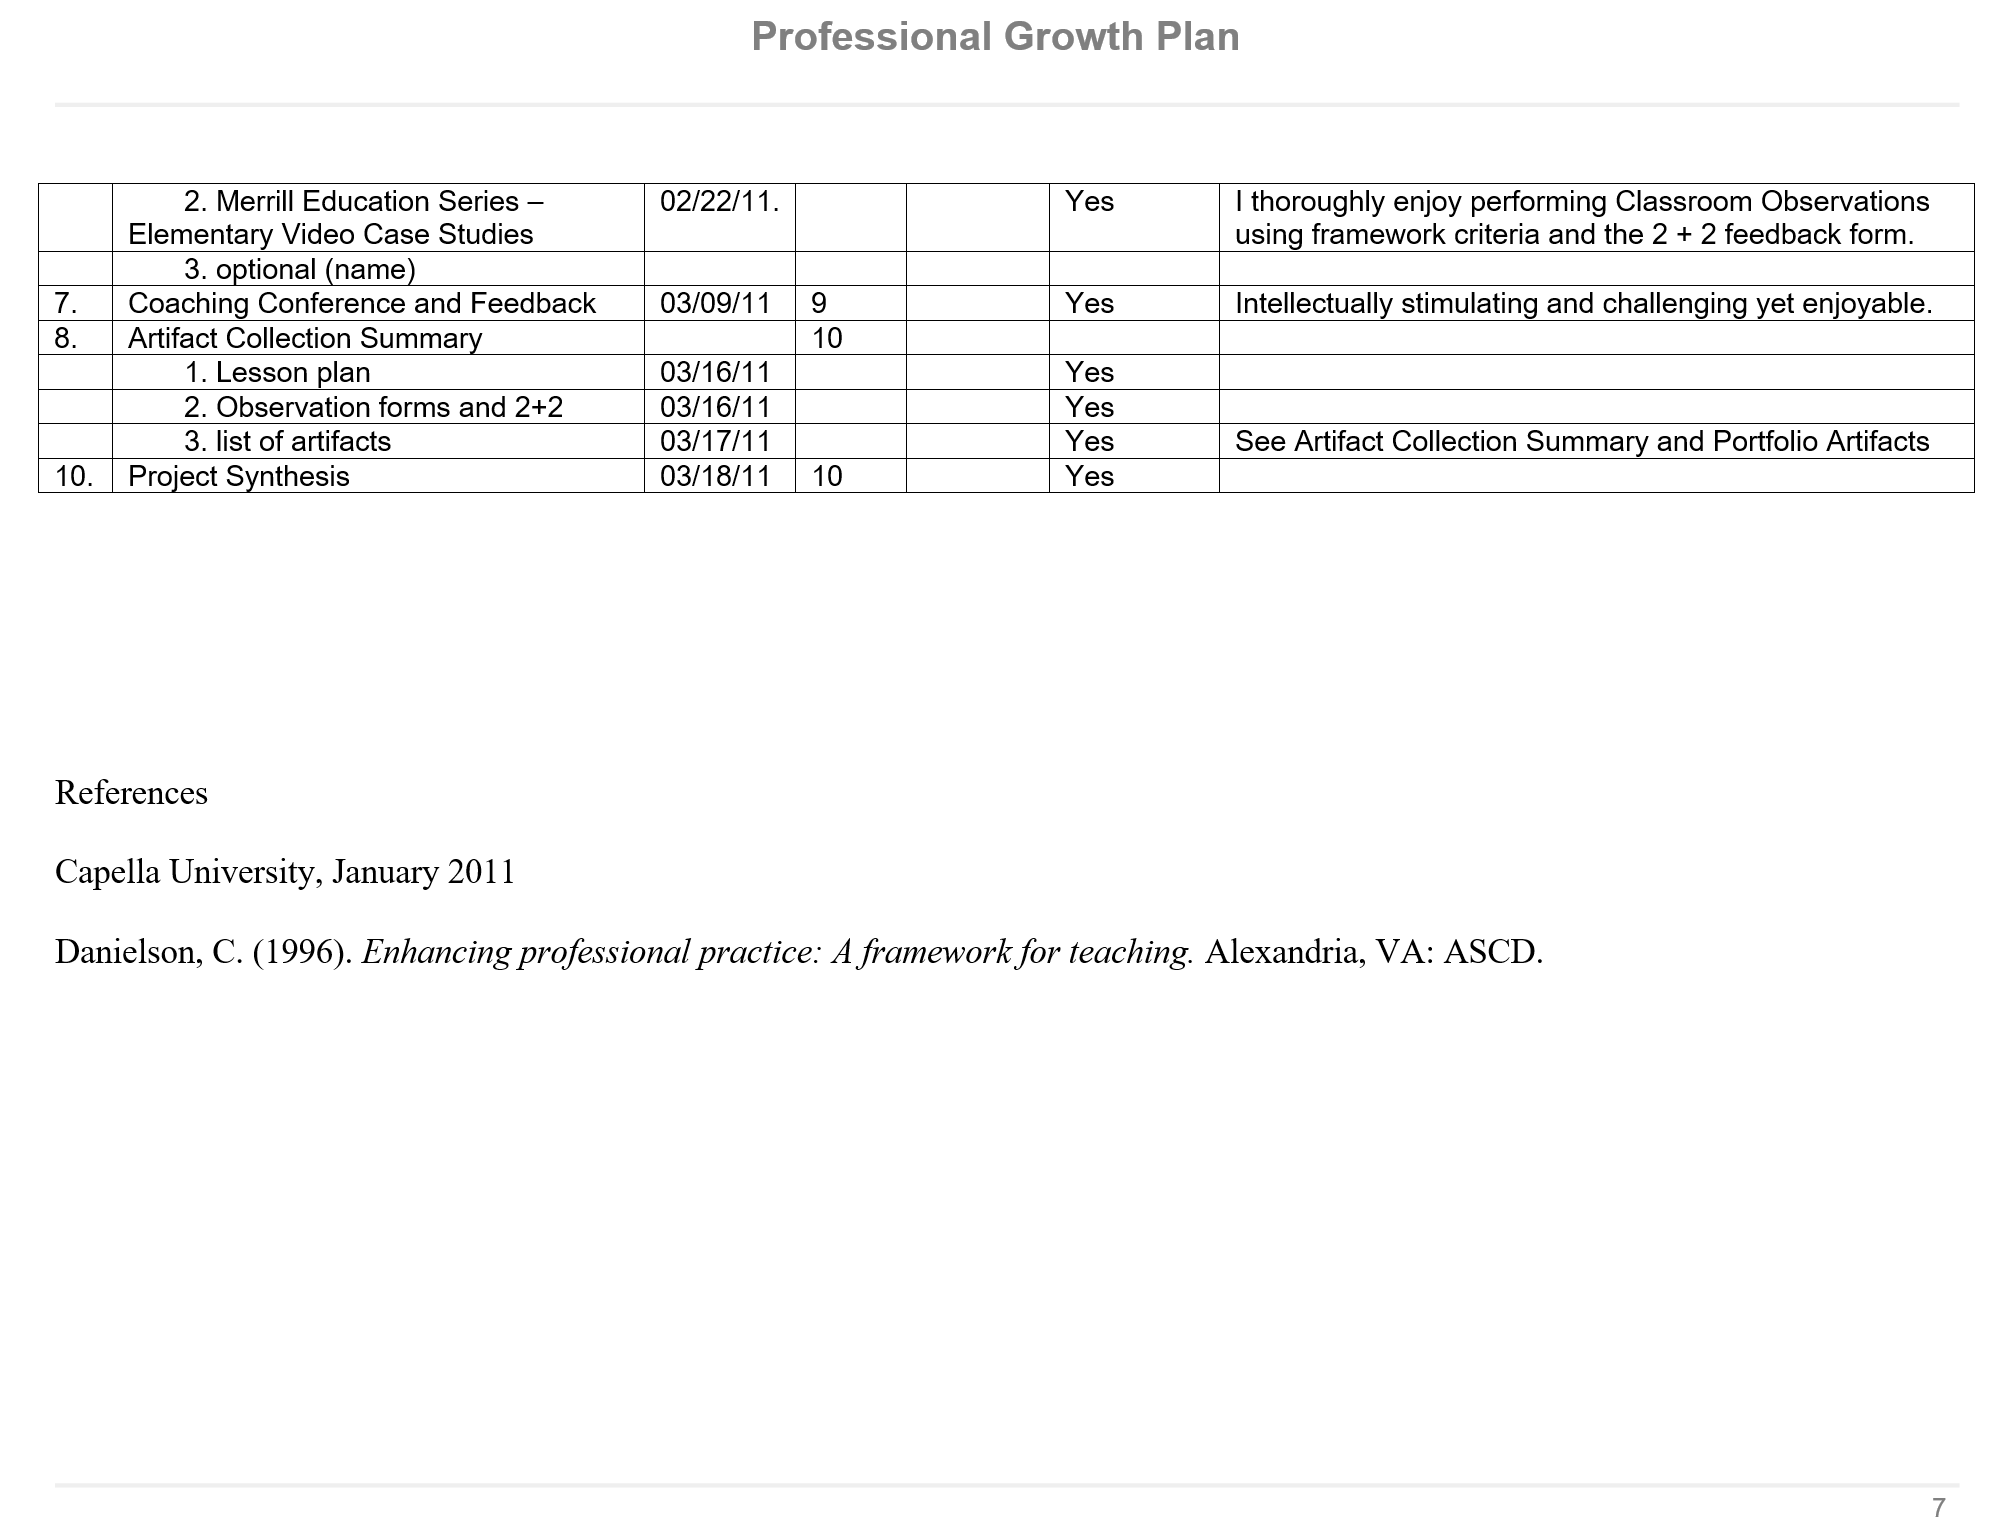 professional growth plan p 7 of 7.PNG